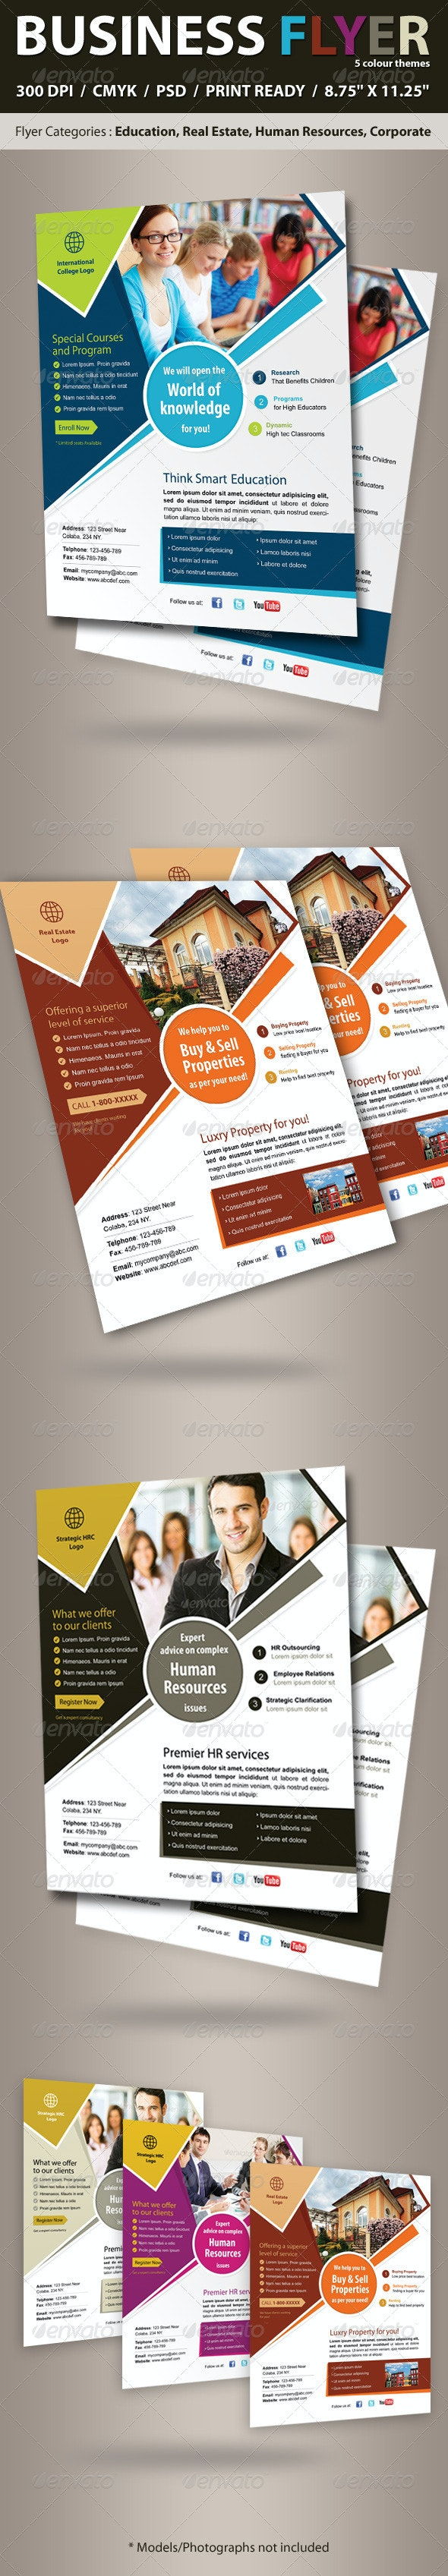 Business Flyer (Real Estate, Education, Corporate) - Corporate Flyers